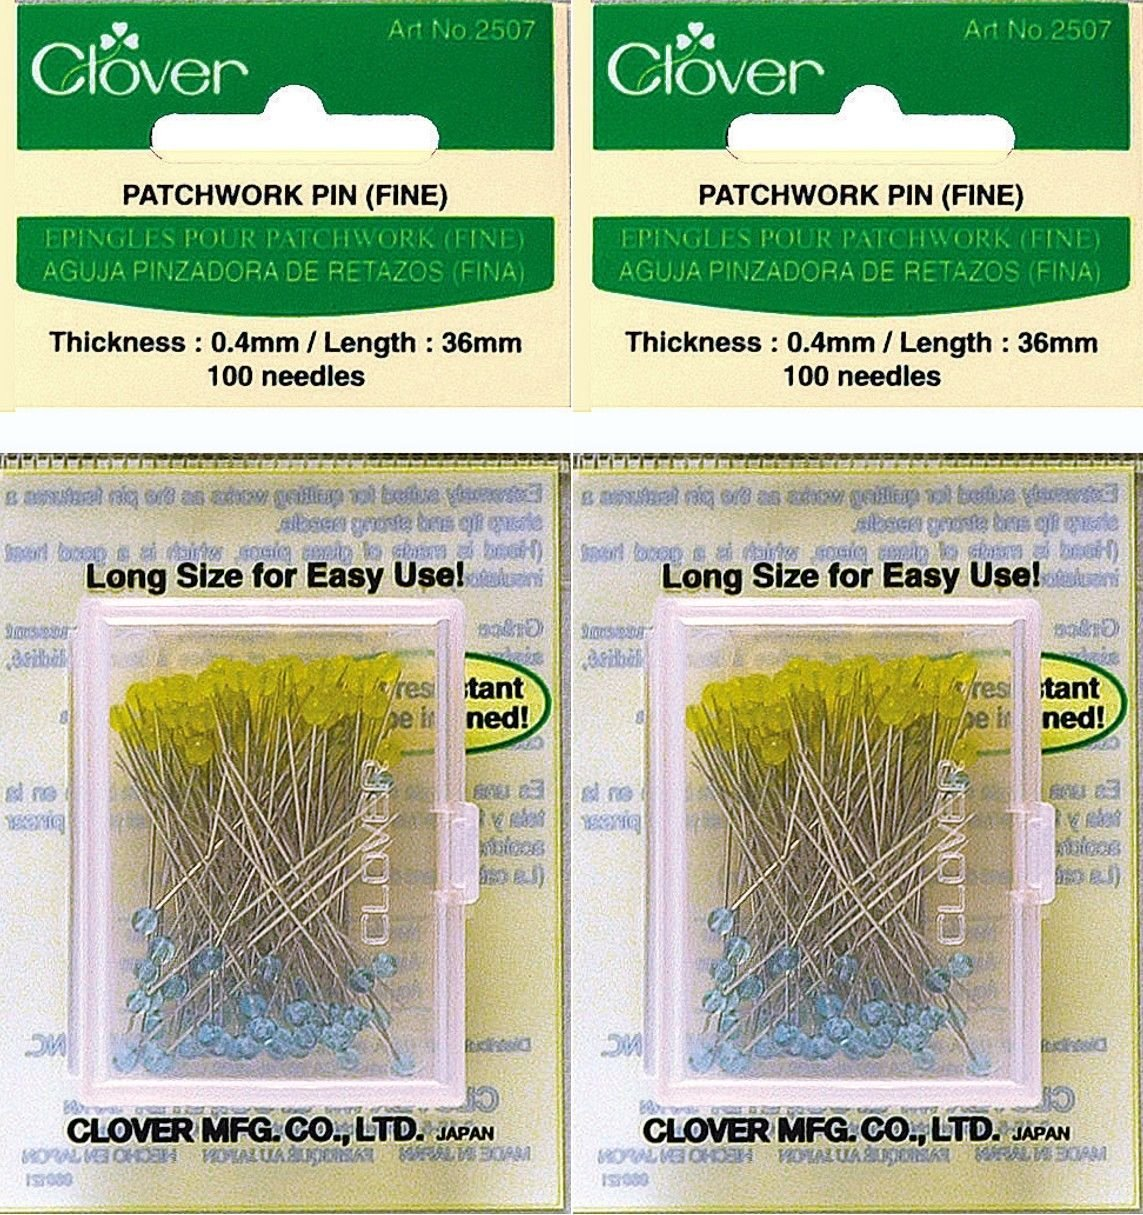 Two (2) Boxes Quantity 100 Clover Extra Fine Patchwork Pins ~ Article No. 2507 ~ 1.5 Long .4mm Glass Head 4336996462